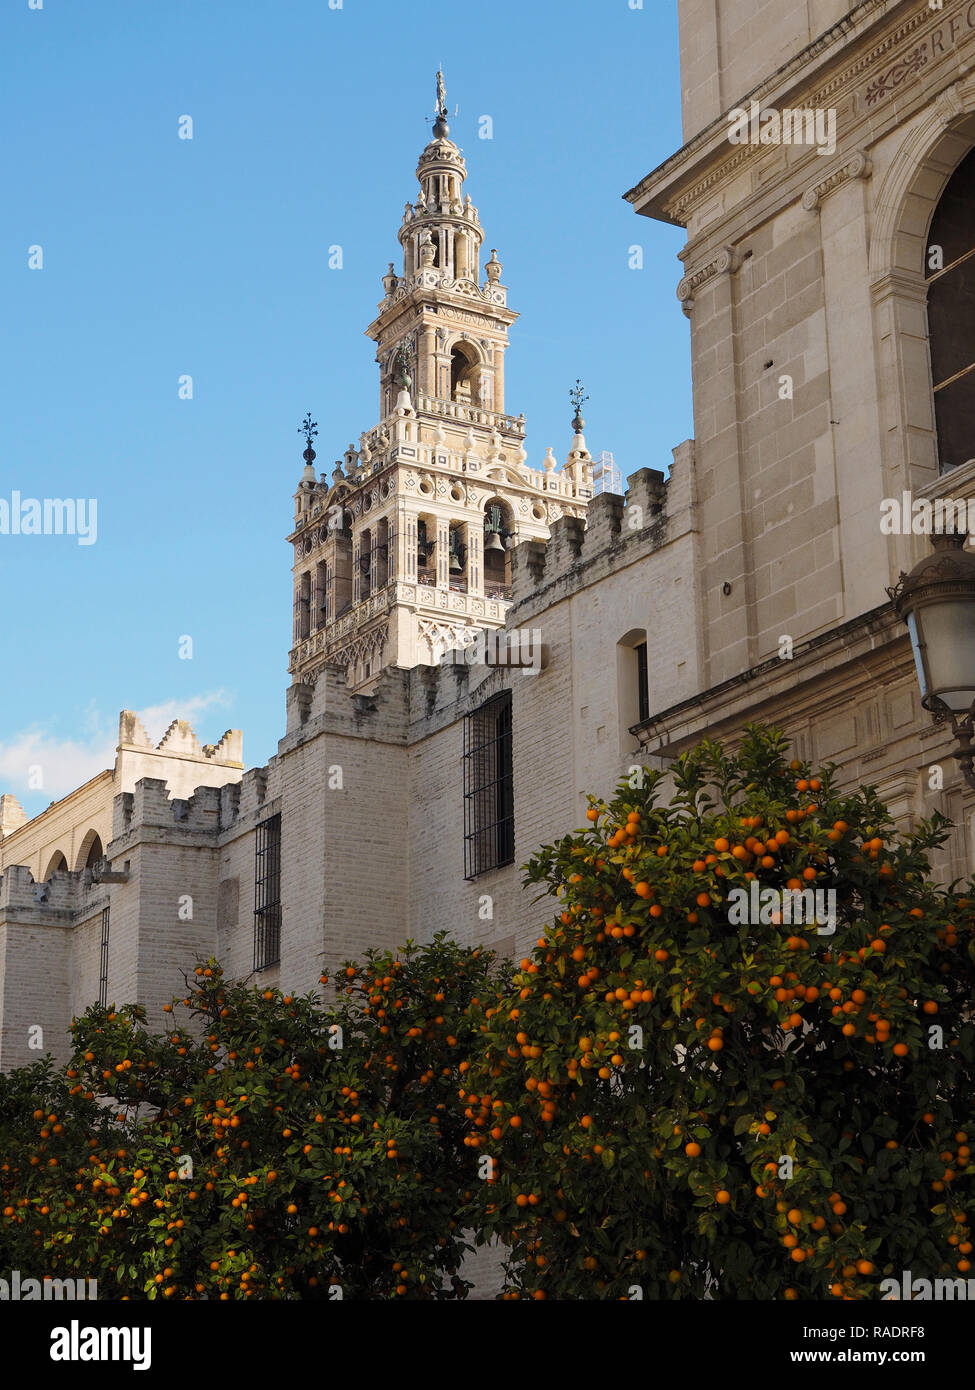 The Giralda belltower of the Seville cathedral, with typical orange trees in the foreground with lots of oranges on them. Andalusia, Spain. - Stock Image